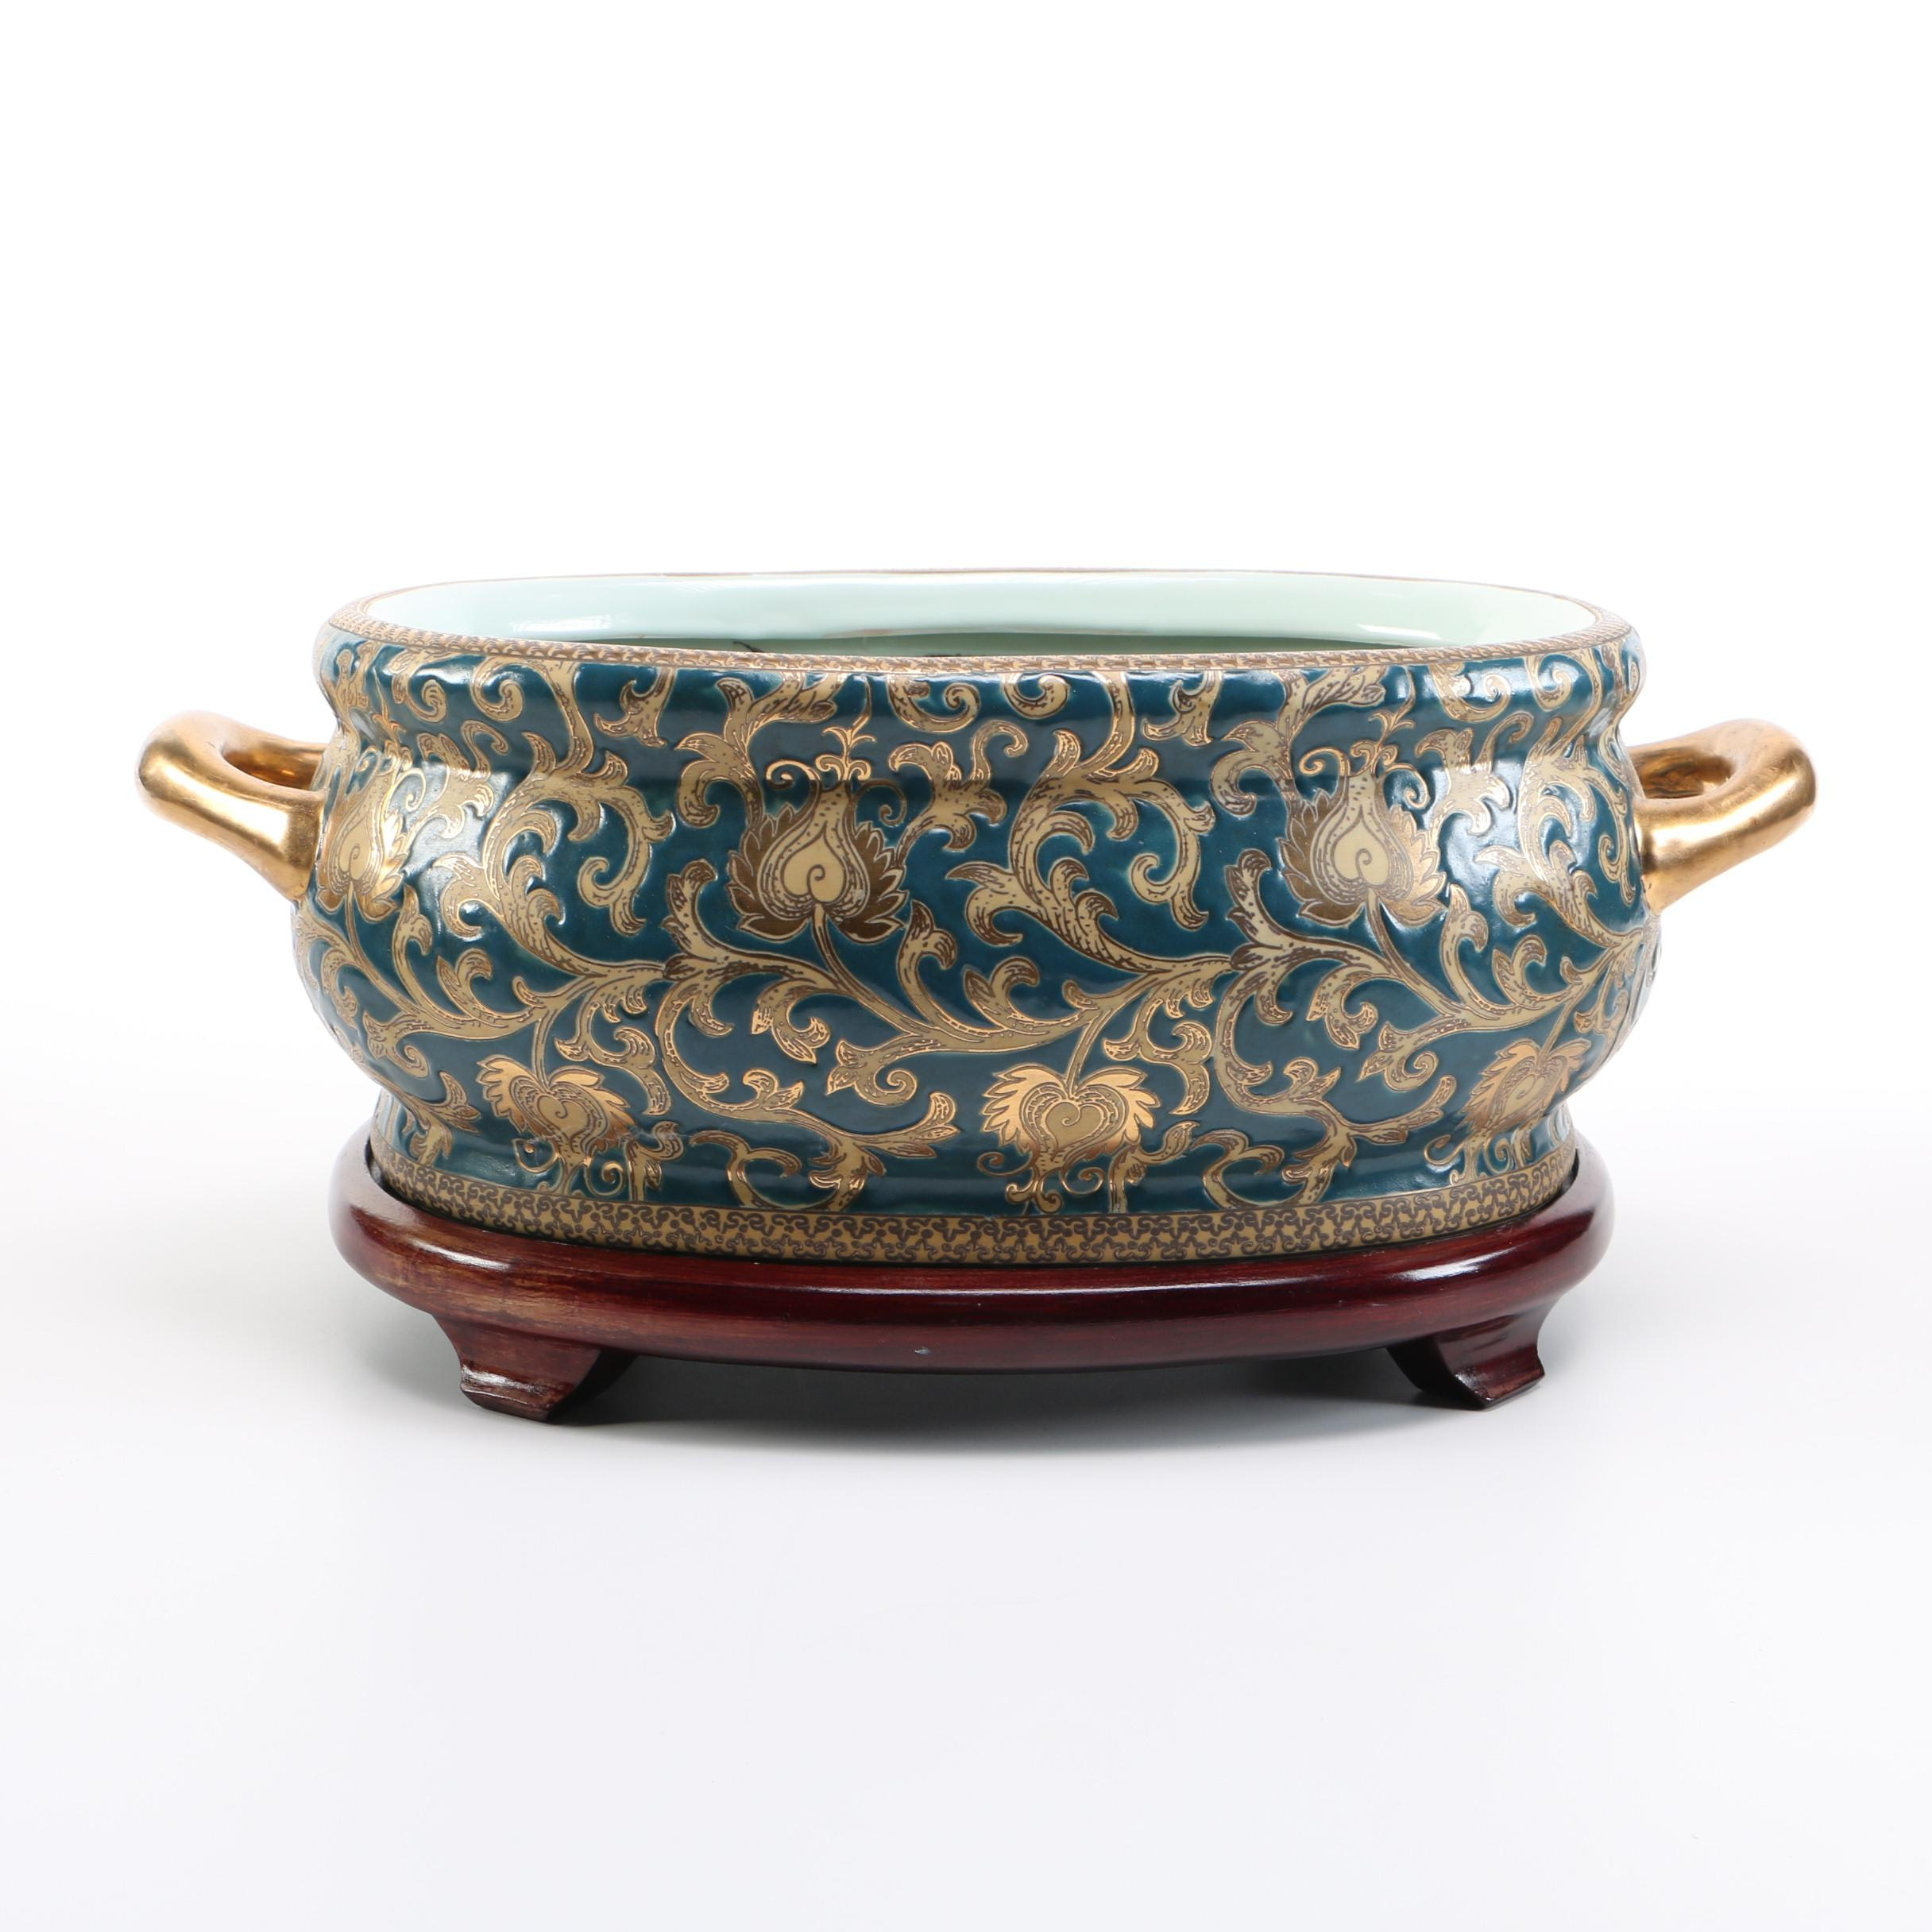 Decorative Chinese Ceramic Foot Bath and Wooden Stand